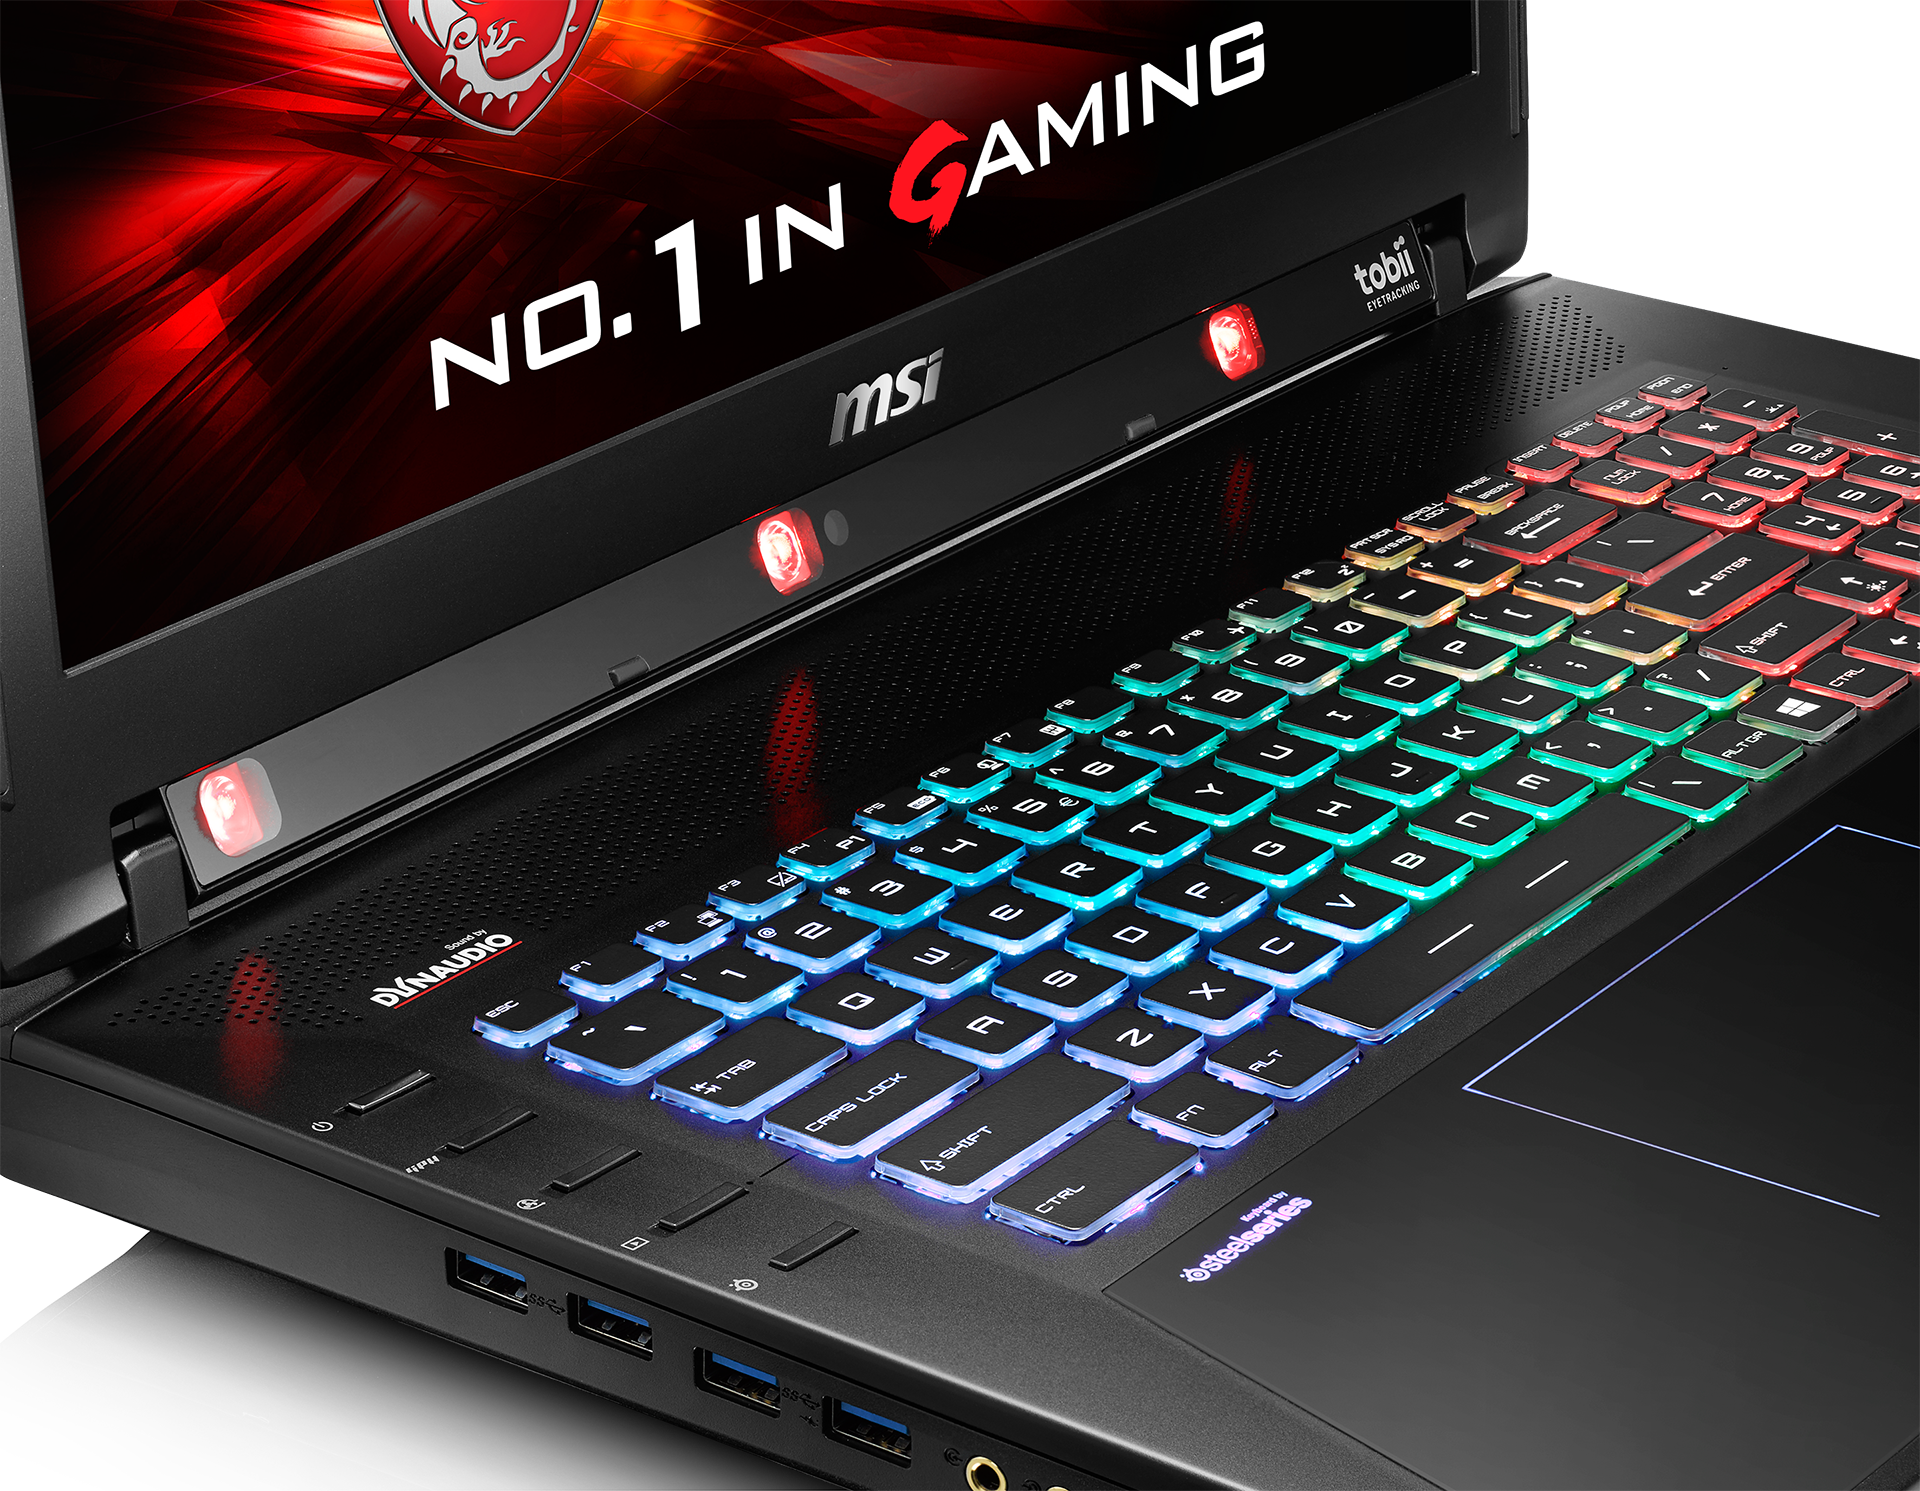 17 zoll msi gaming notebook mit eye tracking news. Black Bedroom Furniture Sets. Home Design Ideas